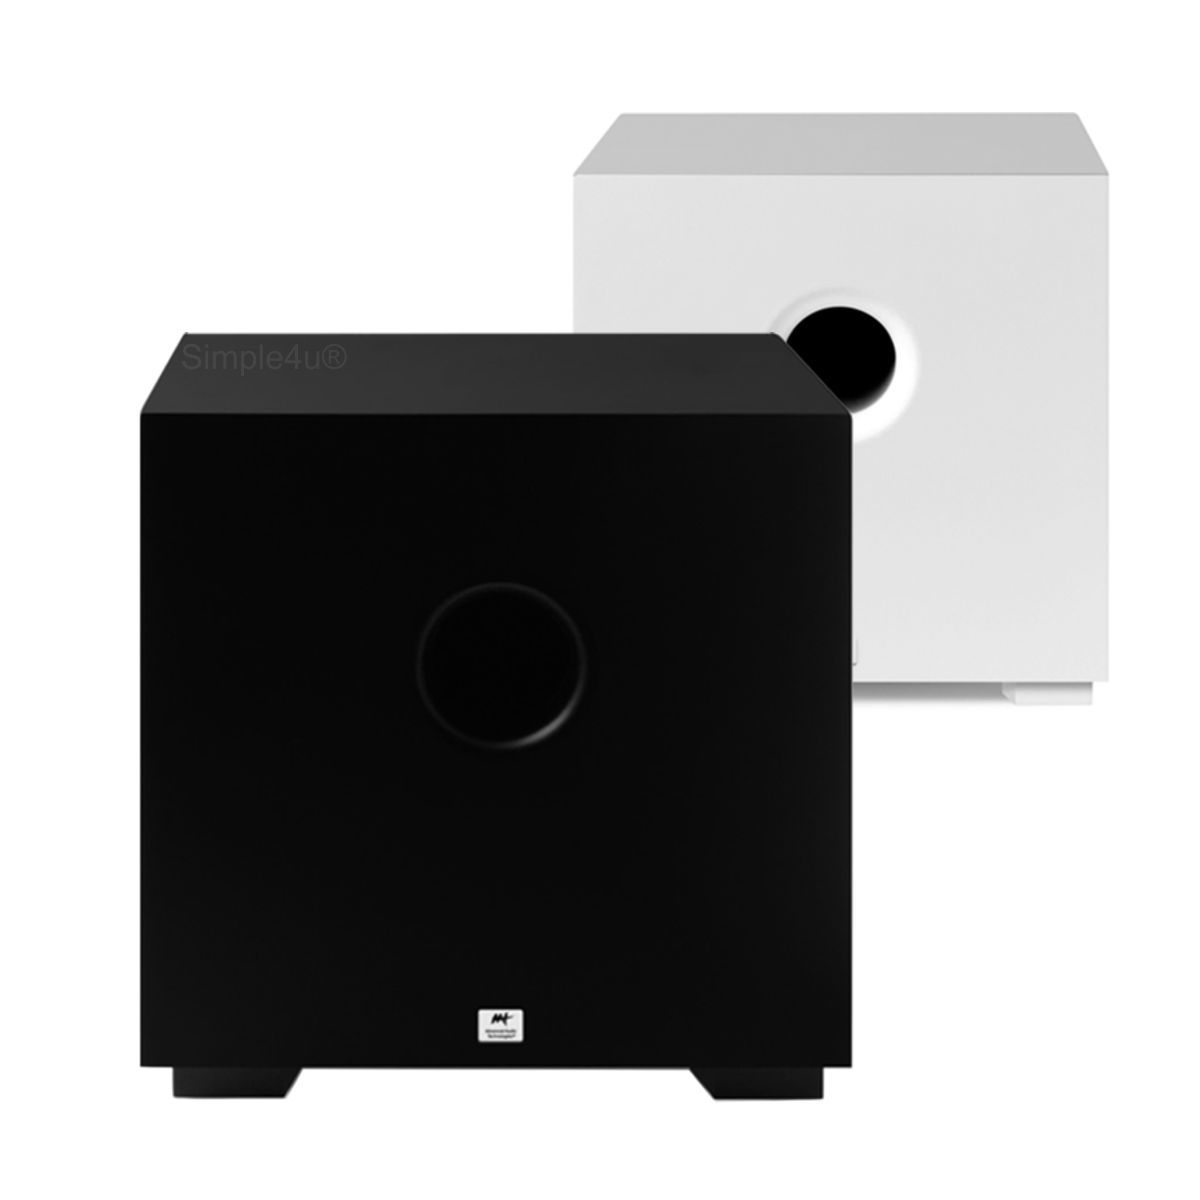 Subwoofer Ativo Compact Cube 10